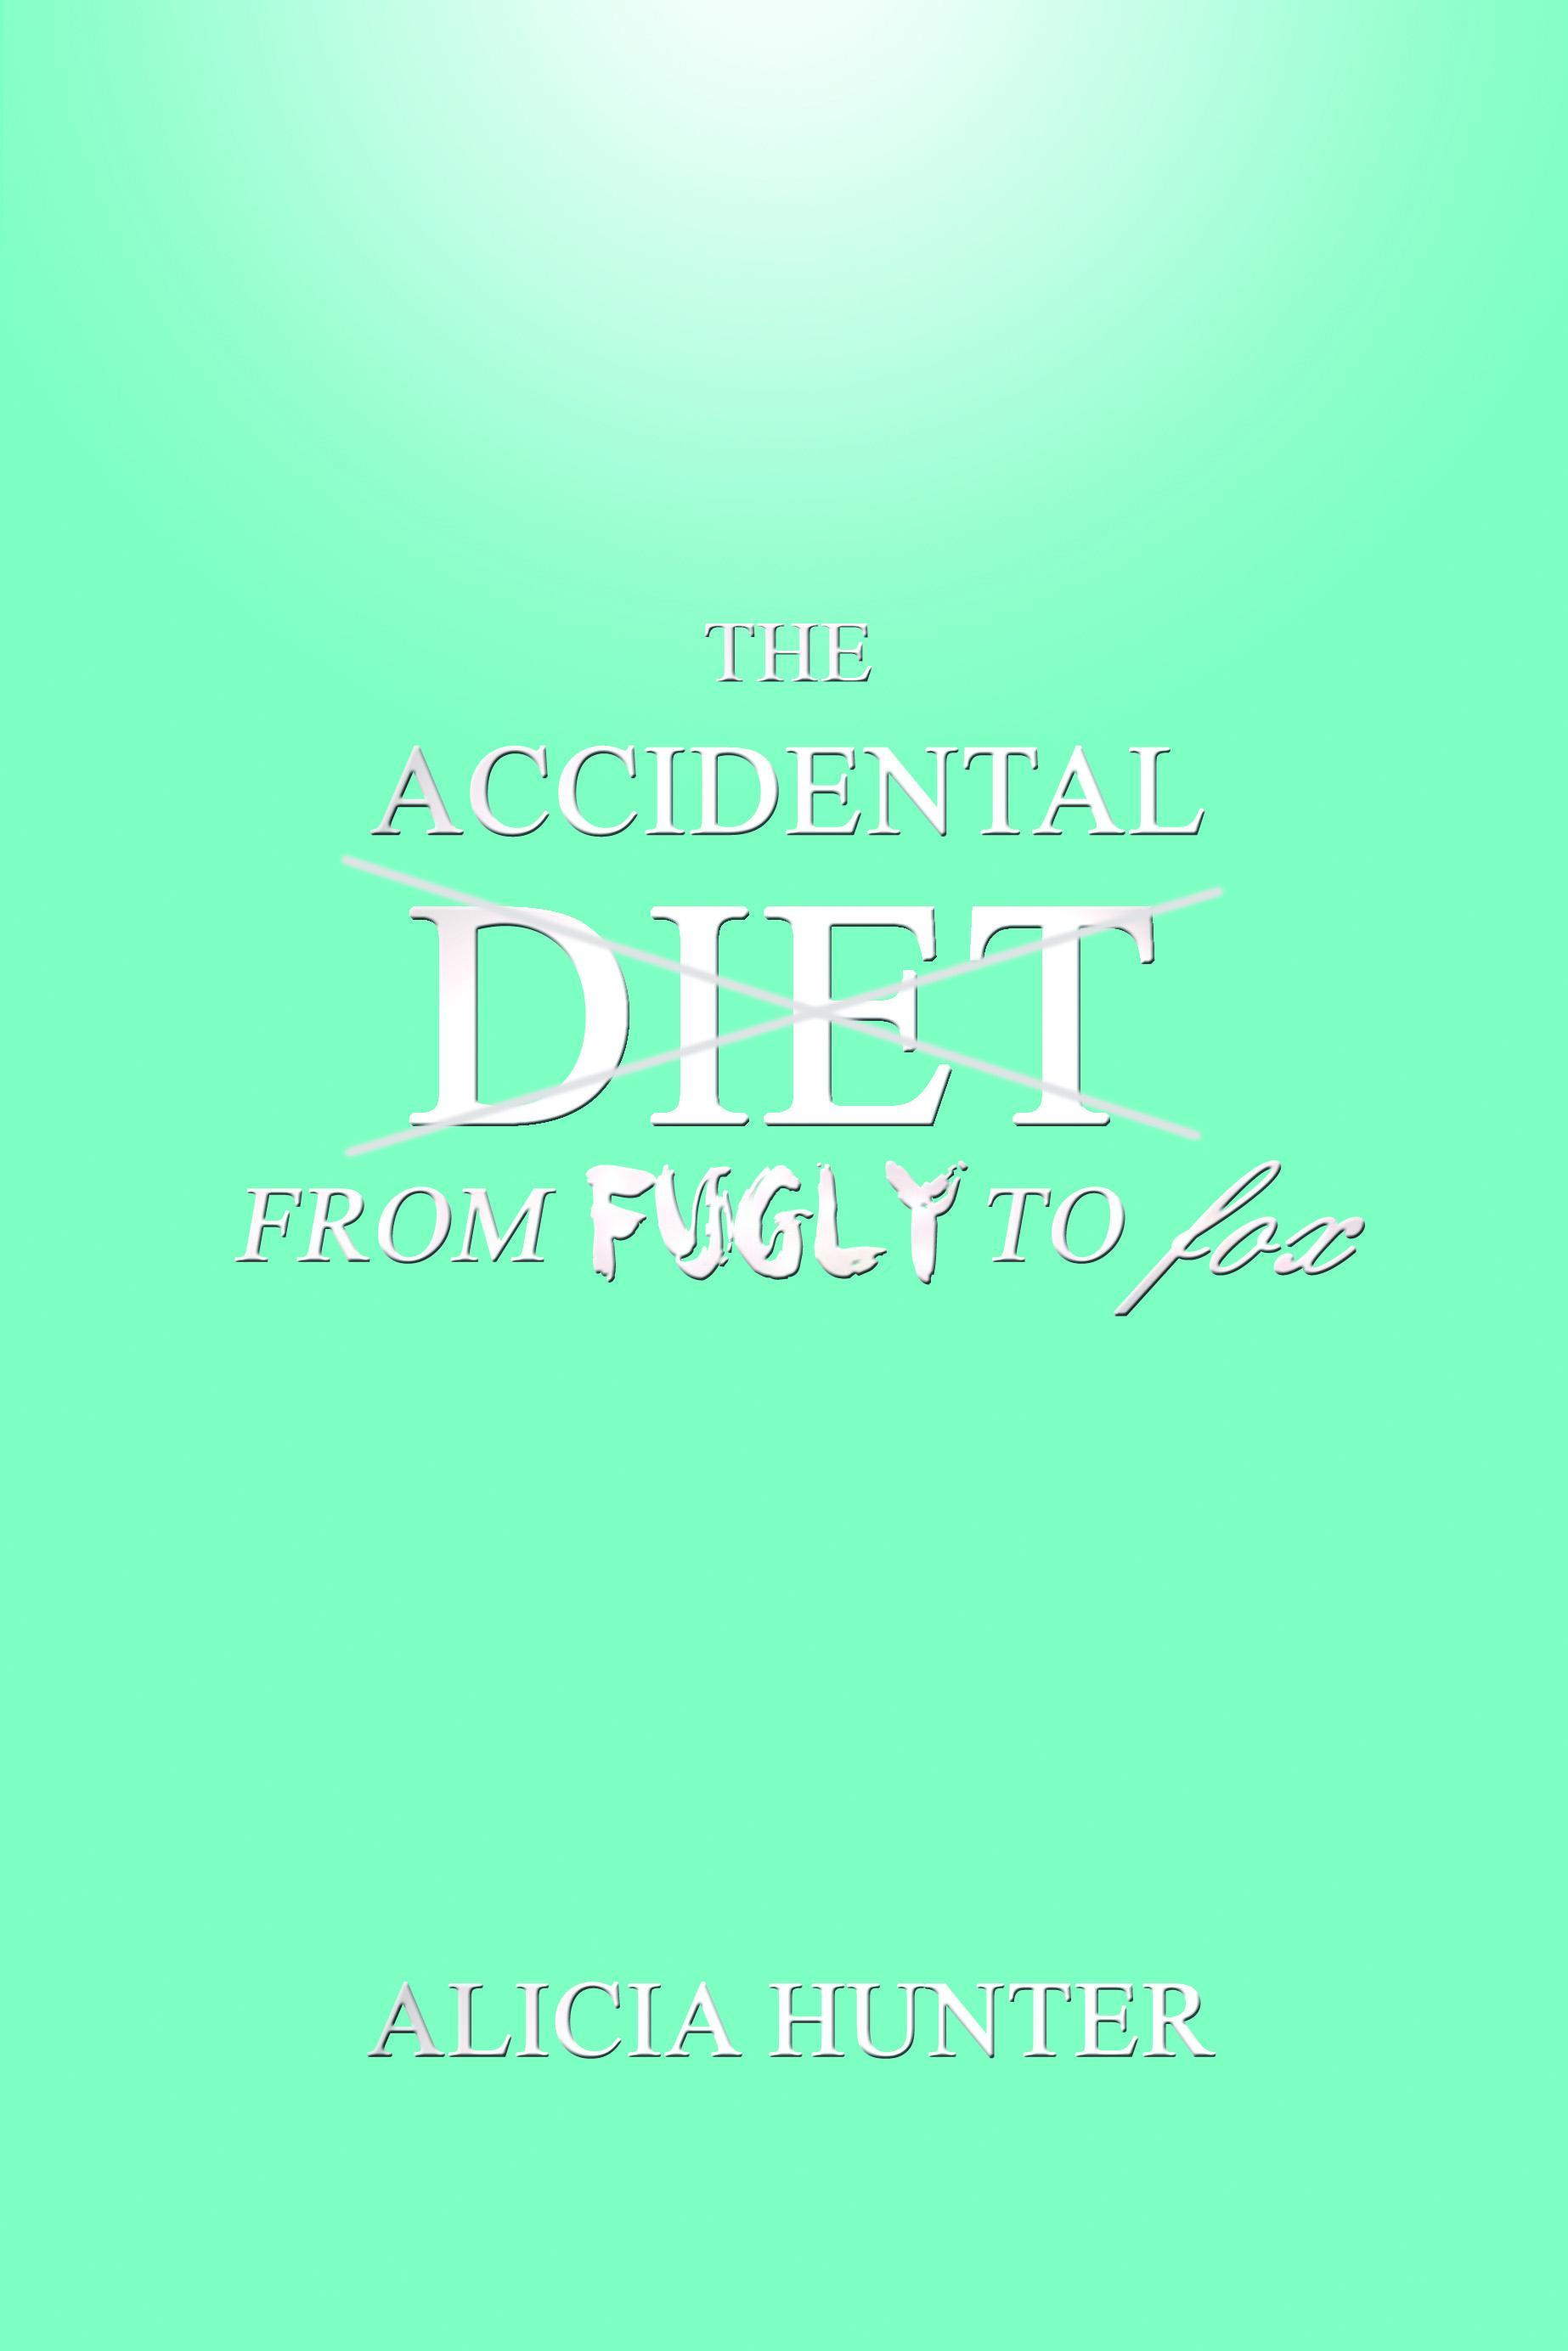 The Accidental Diet    From Fugly to fox